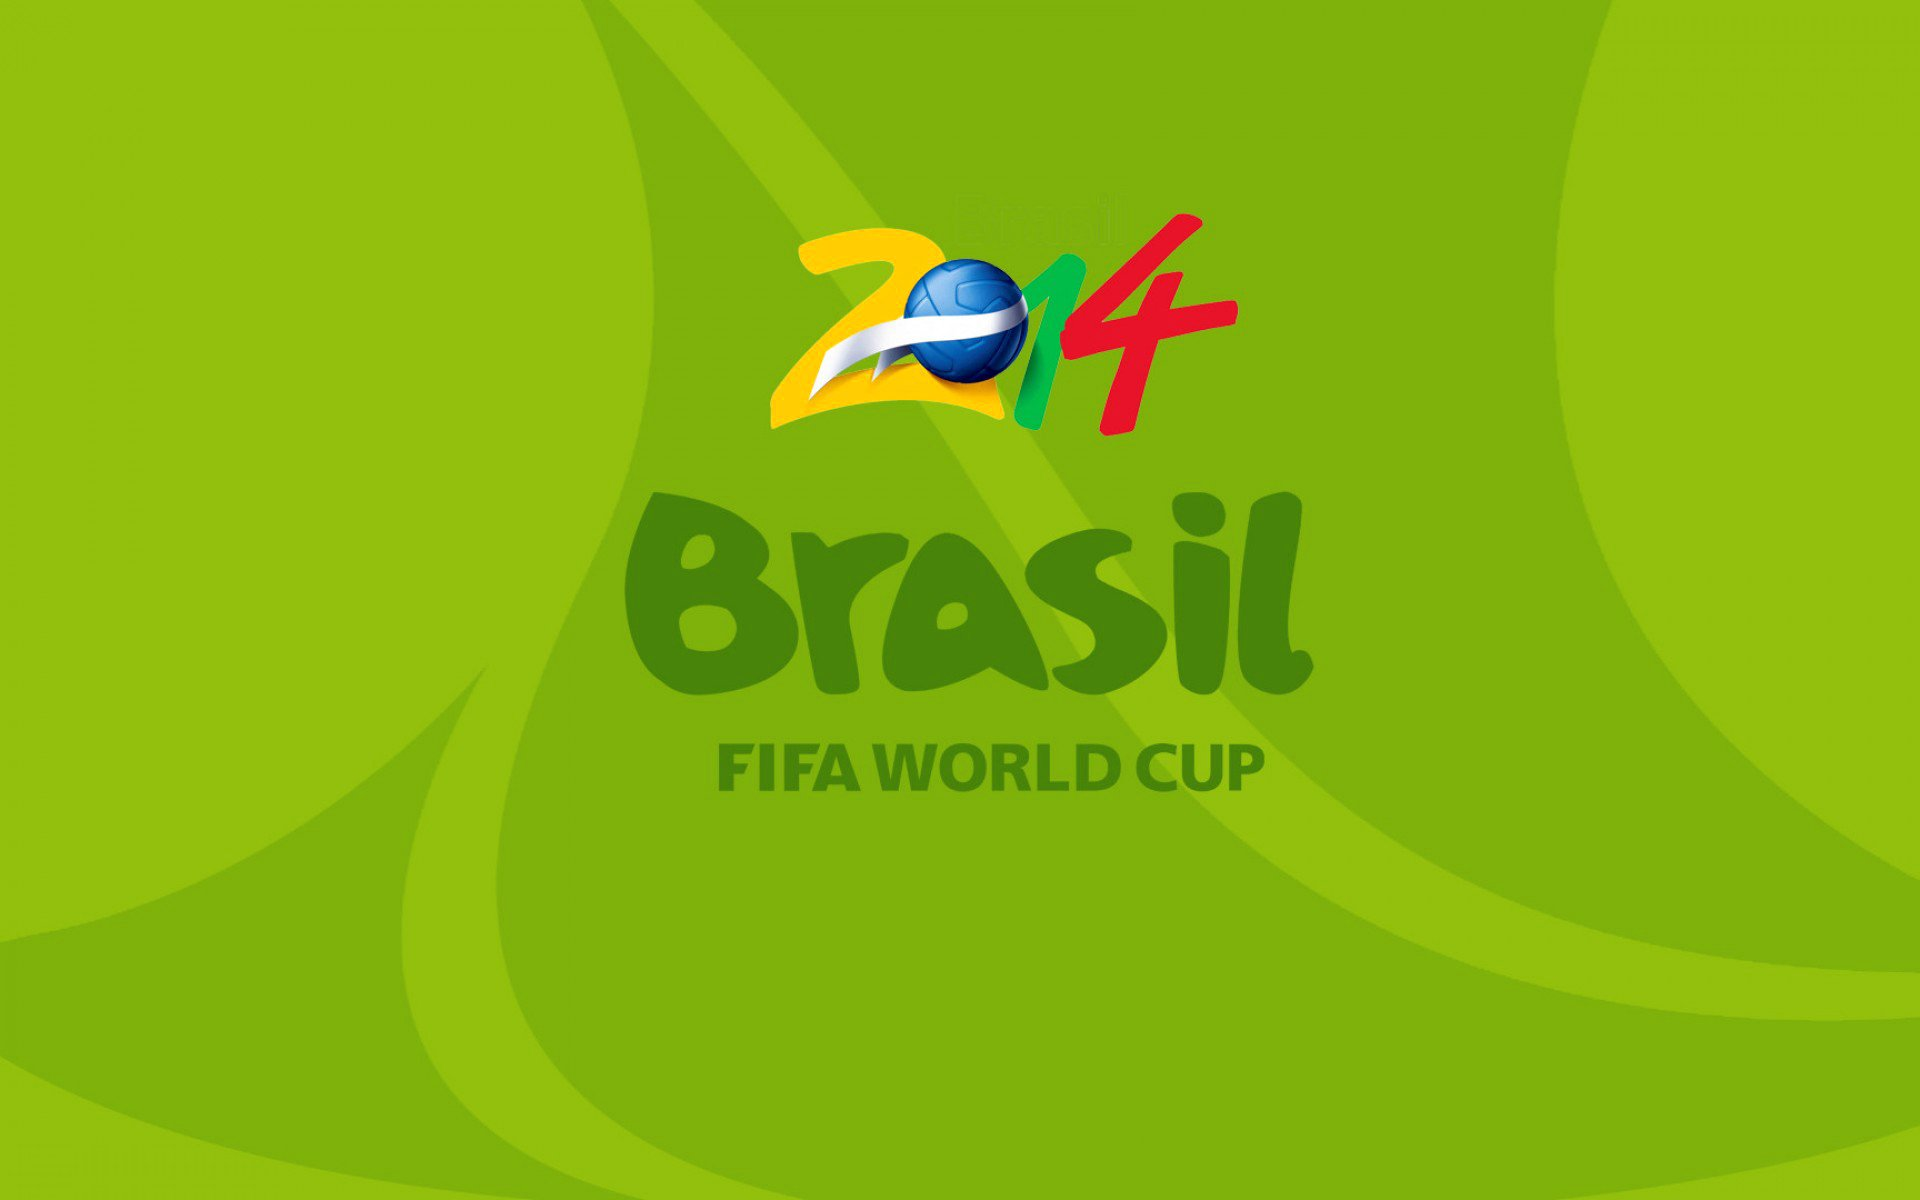 fifa world cup 2014 in brazil Thus, the 2014 world cup in brazil is considered the most expensive world cup ever in addition to a lack of cost and budget planning, this major project also made the headlines due to insufficient resource planning and time management issues.